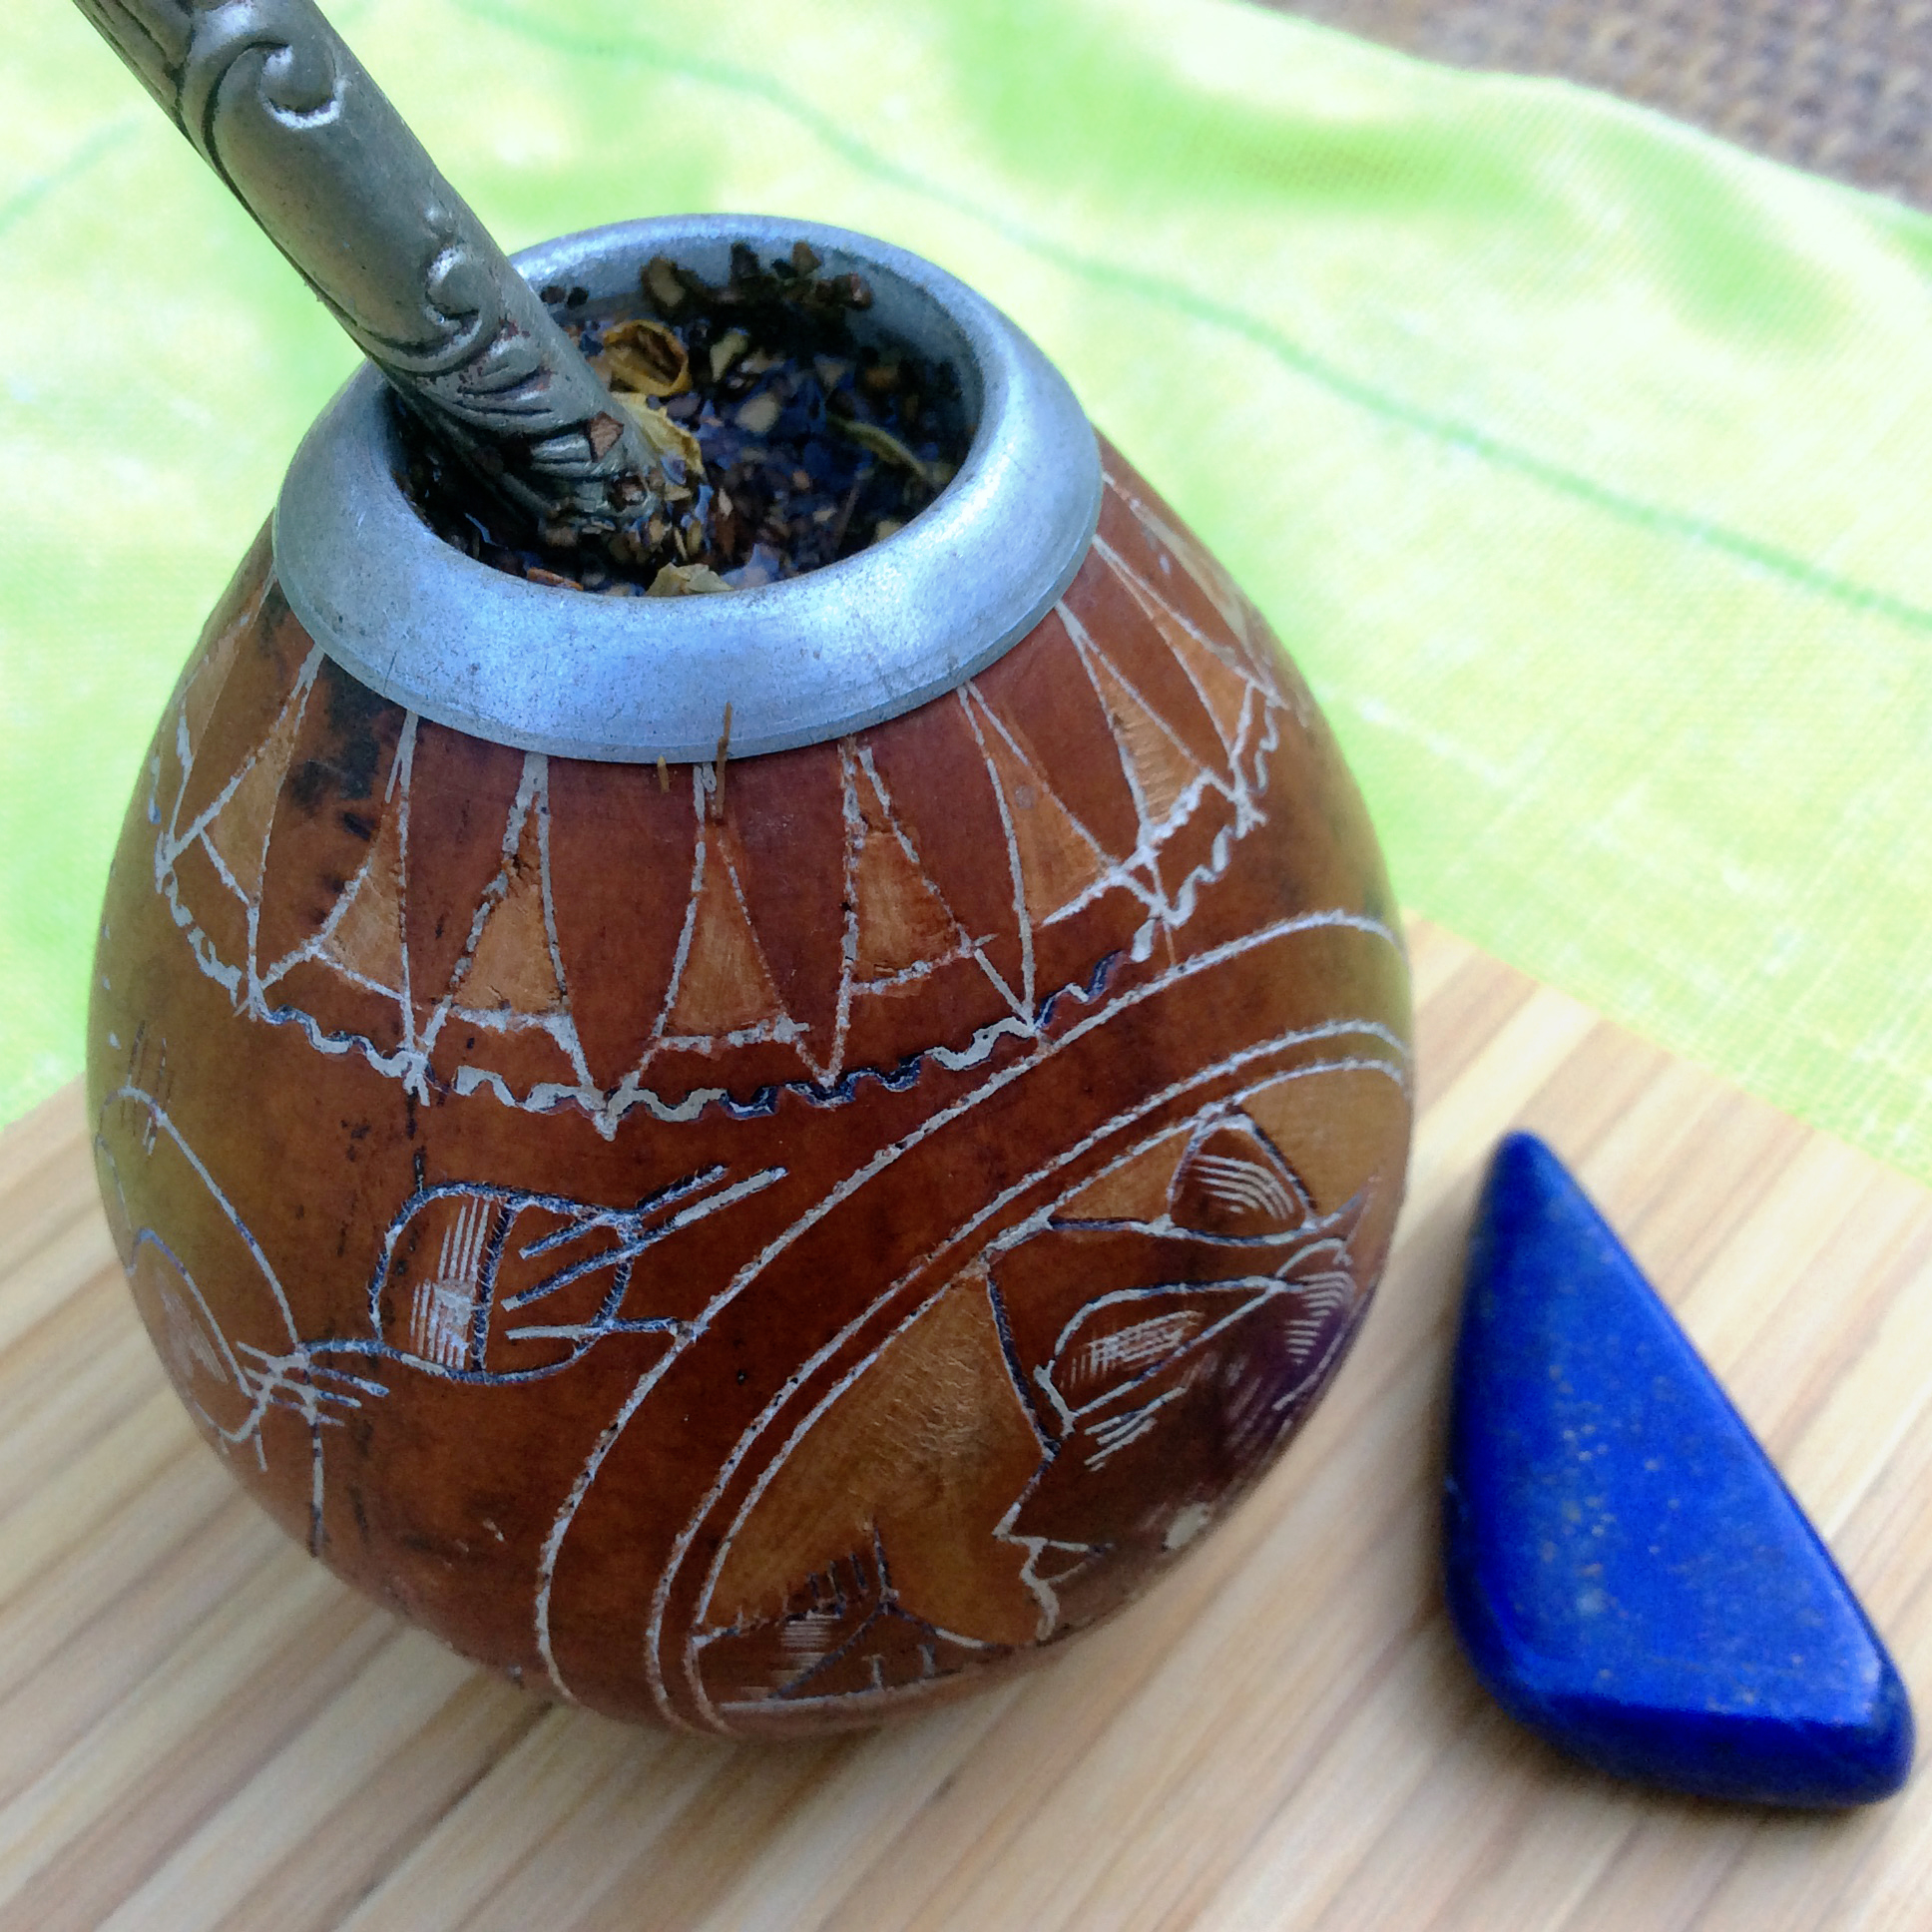 A mate gourd with a bombilla stuck in the opening sits on a wooden board next to a blue stone.